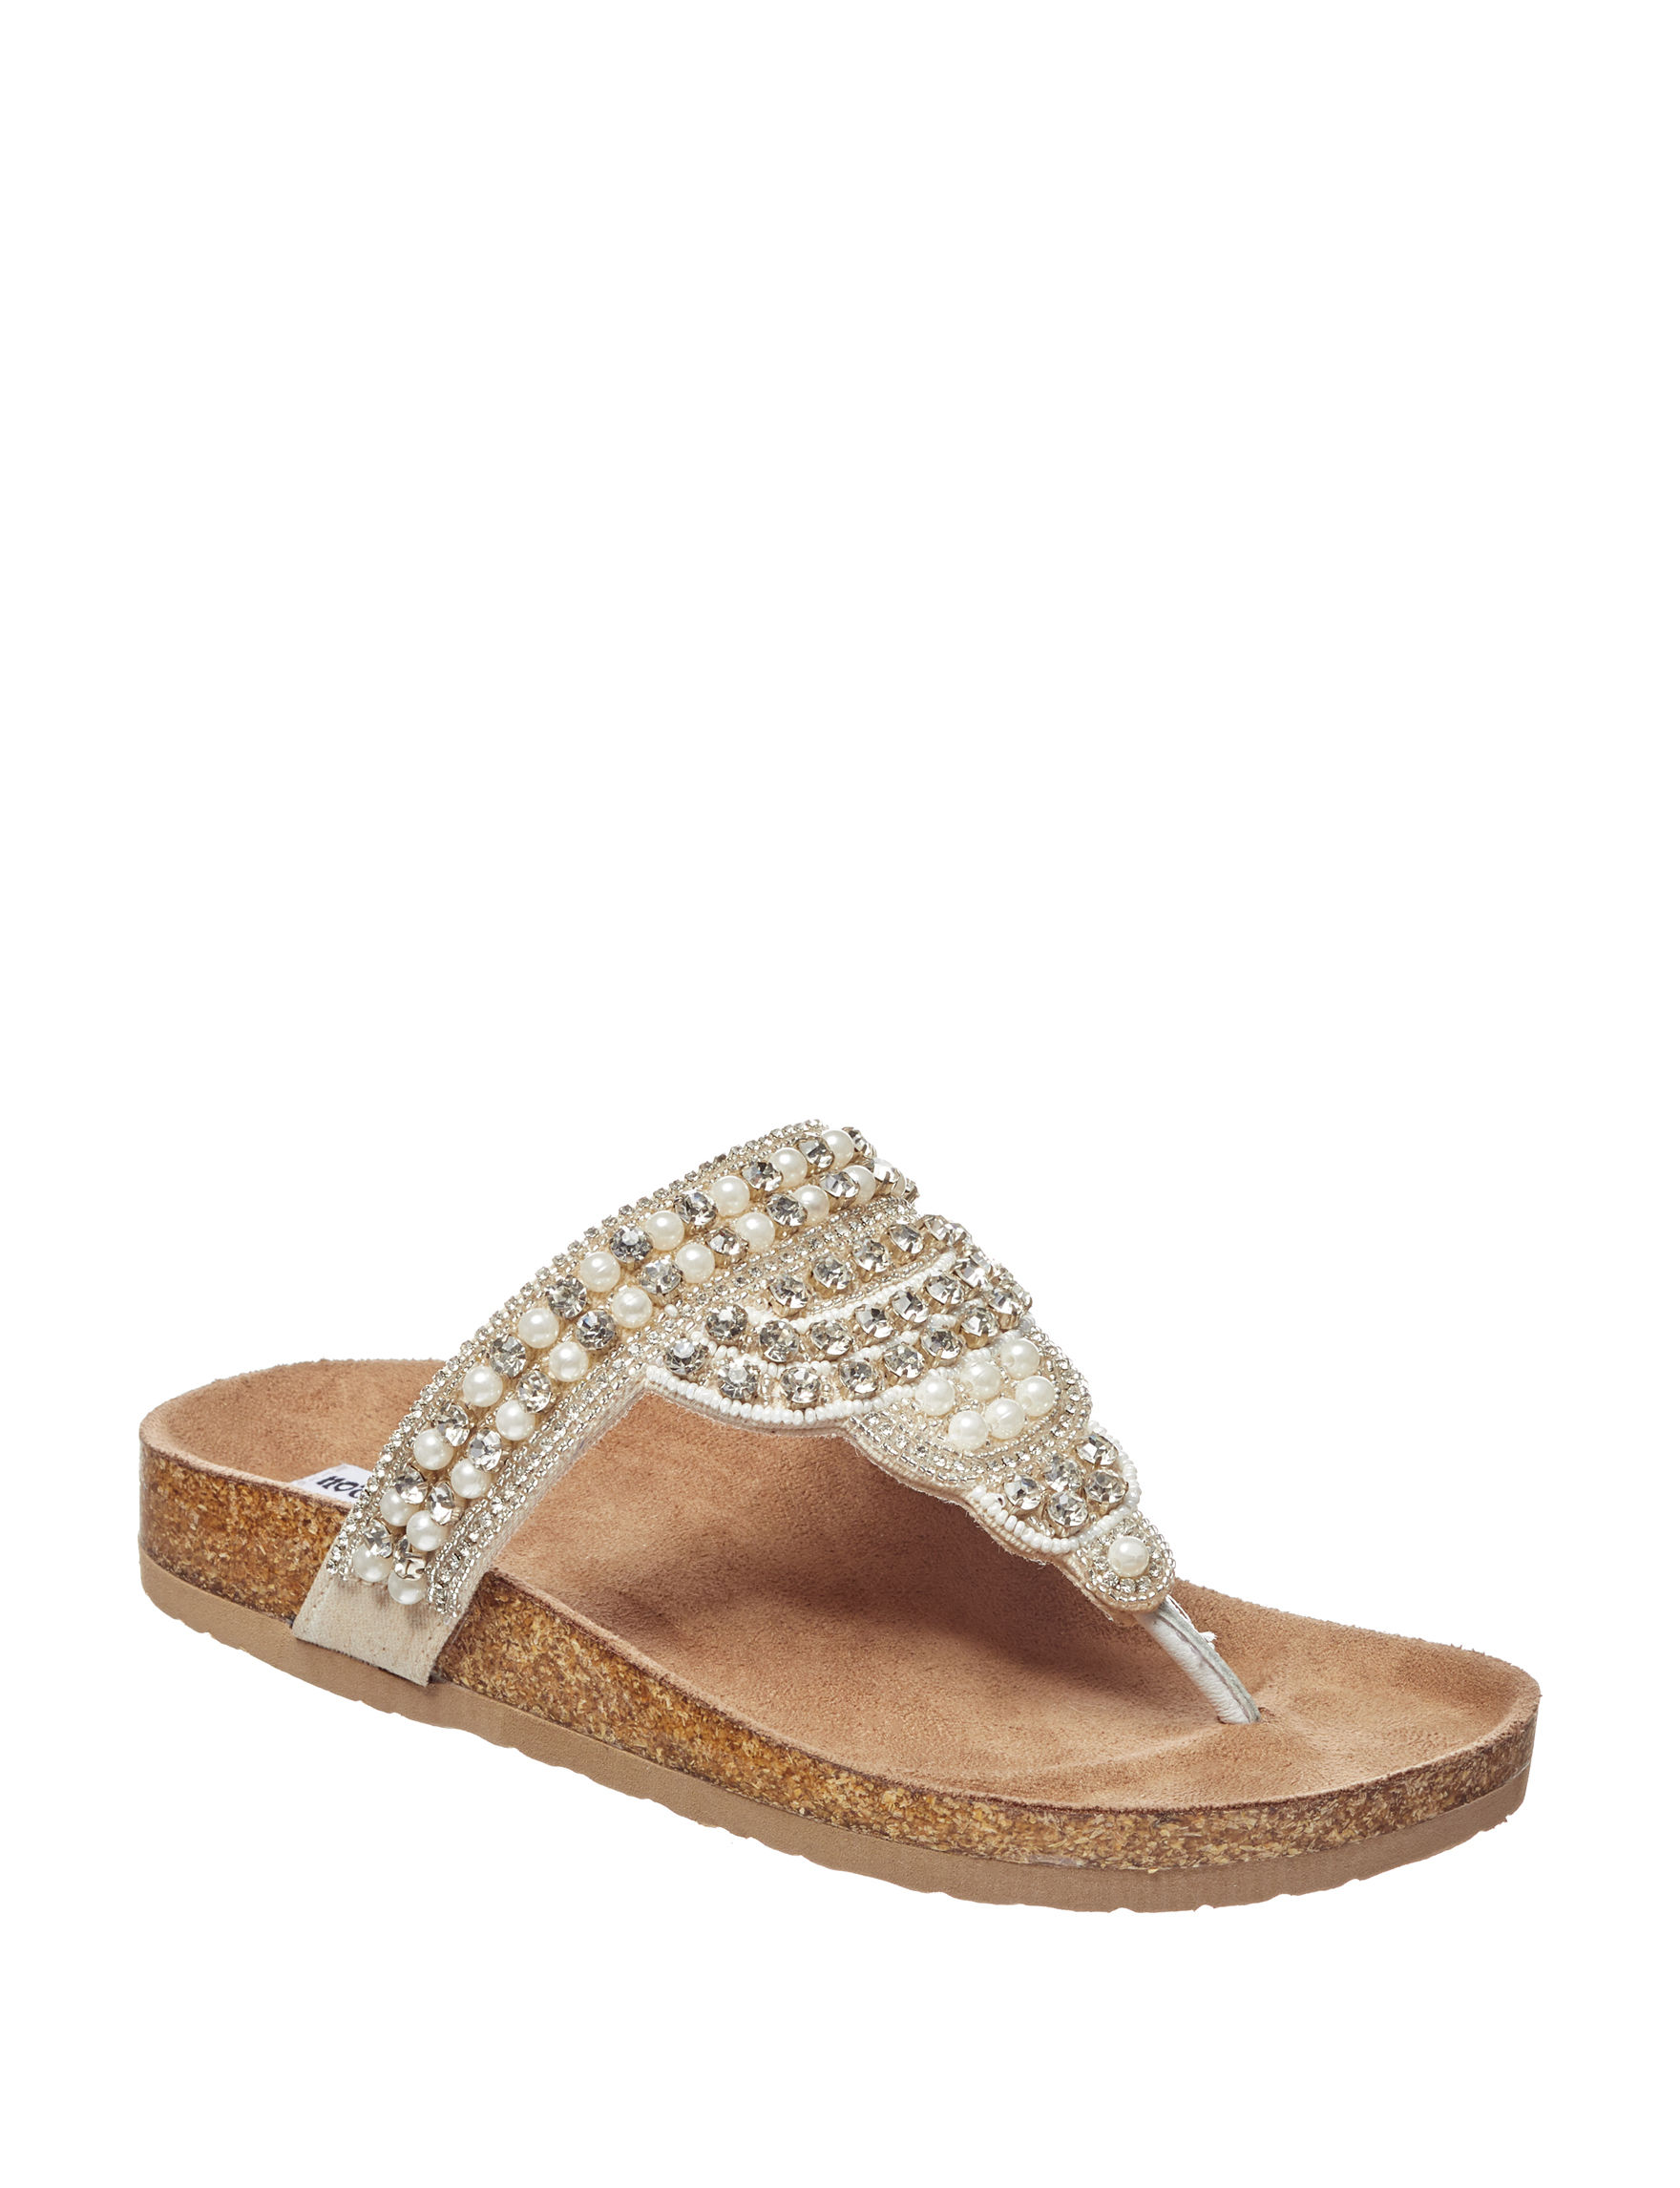 Not Rated White Flat Sandals Flip Flops Slide Sandals